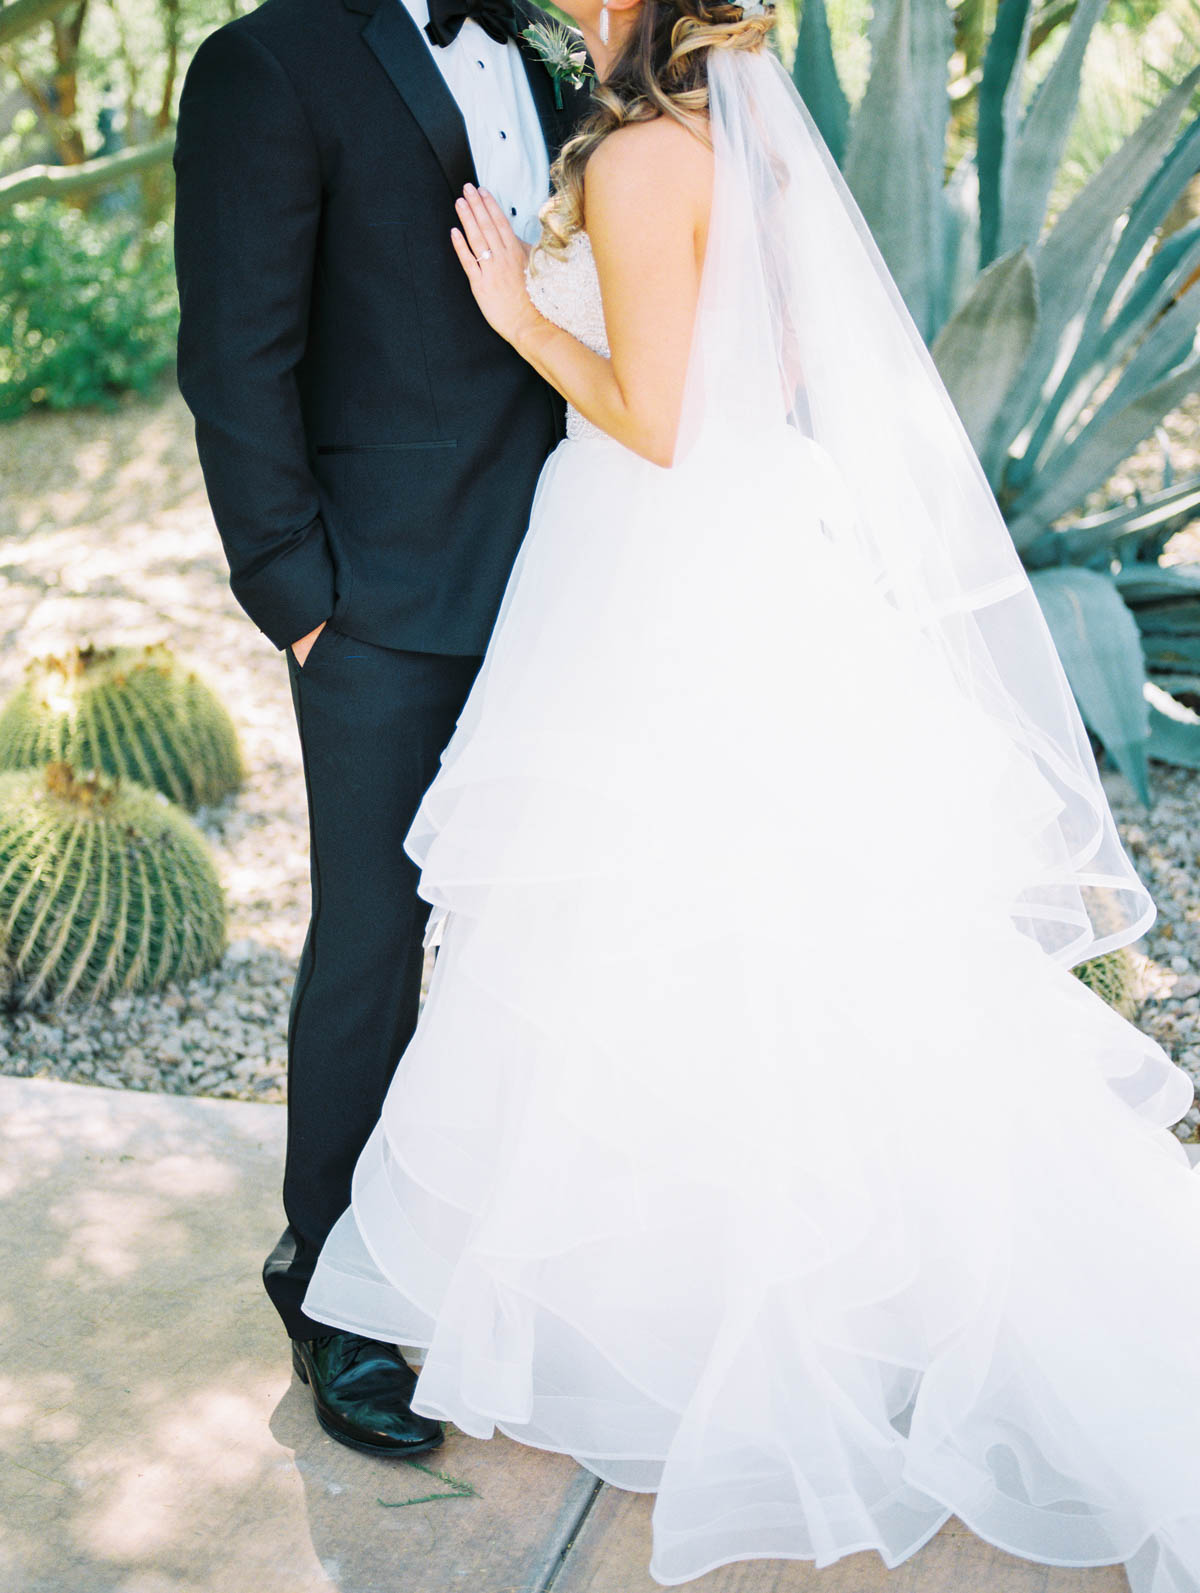 Bride and groom captured by Tucson Wedding Photographers Betsy & John